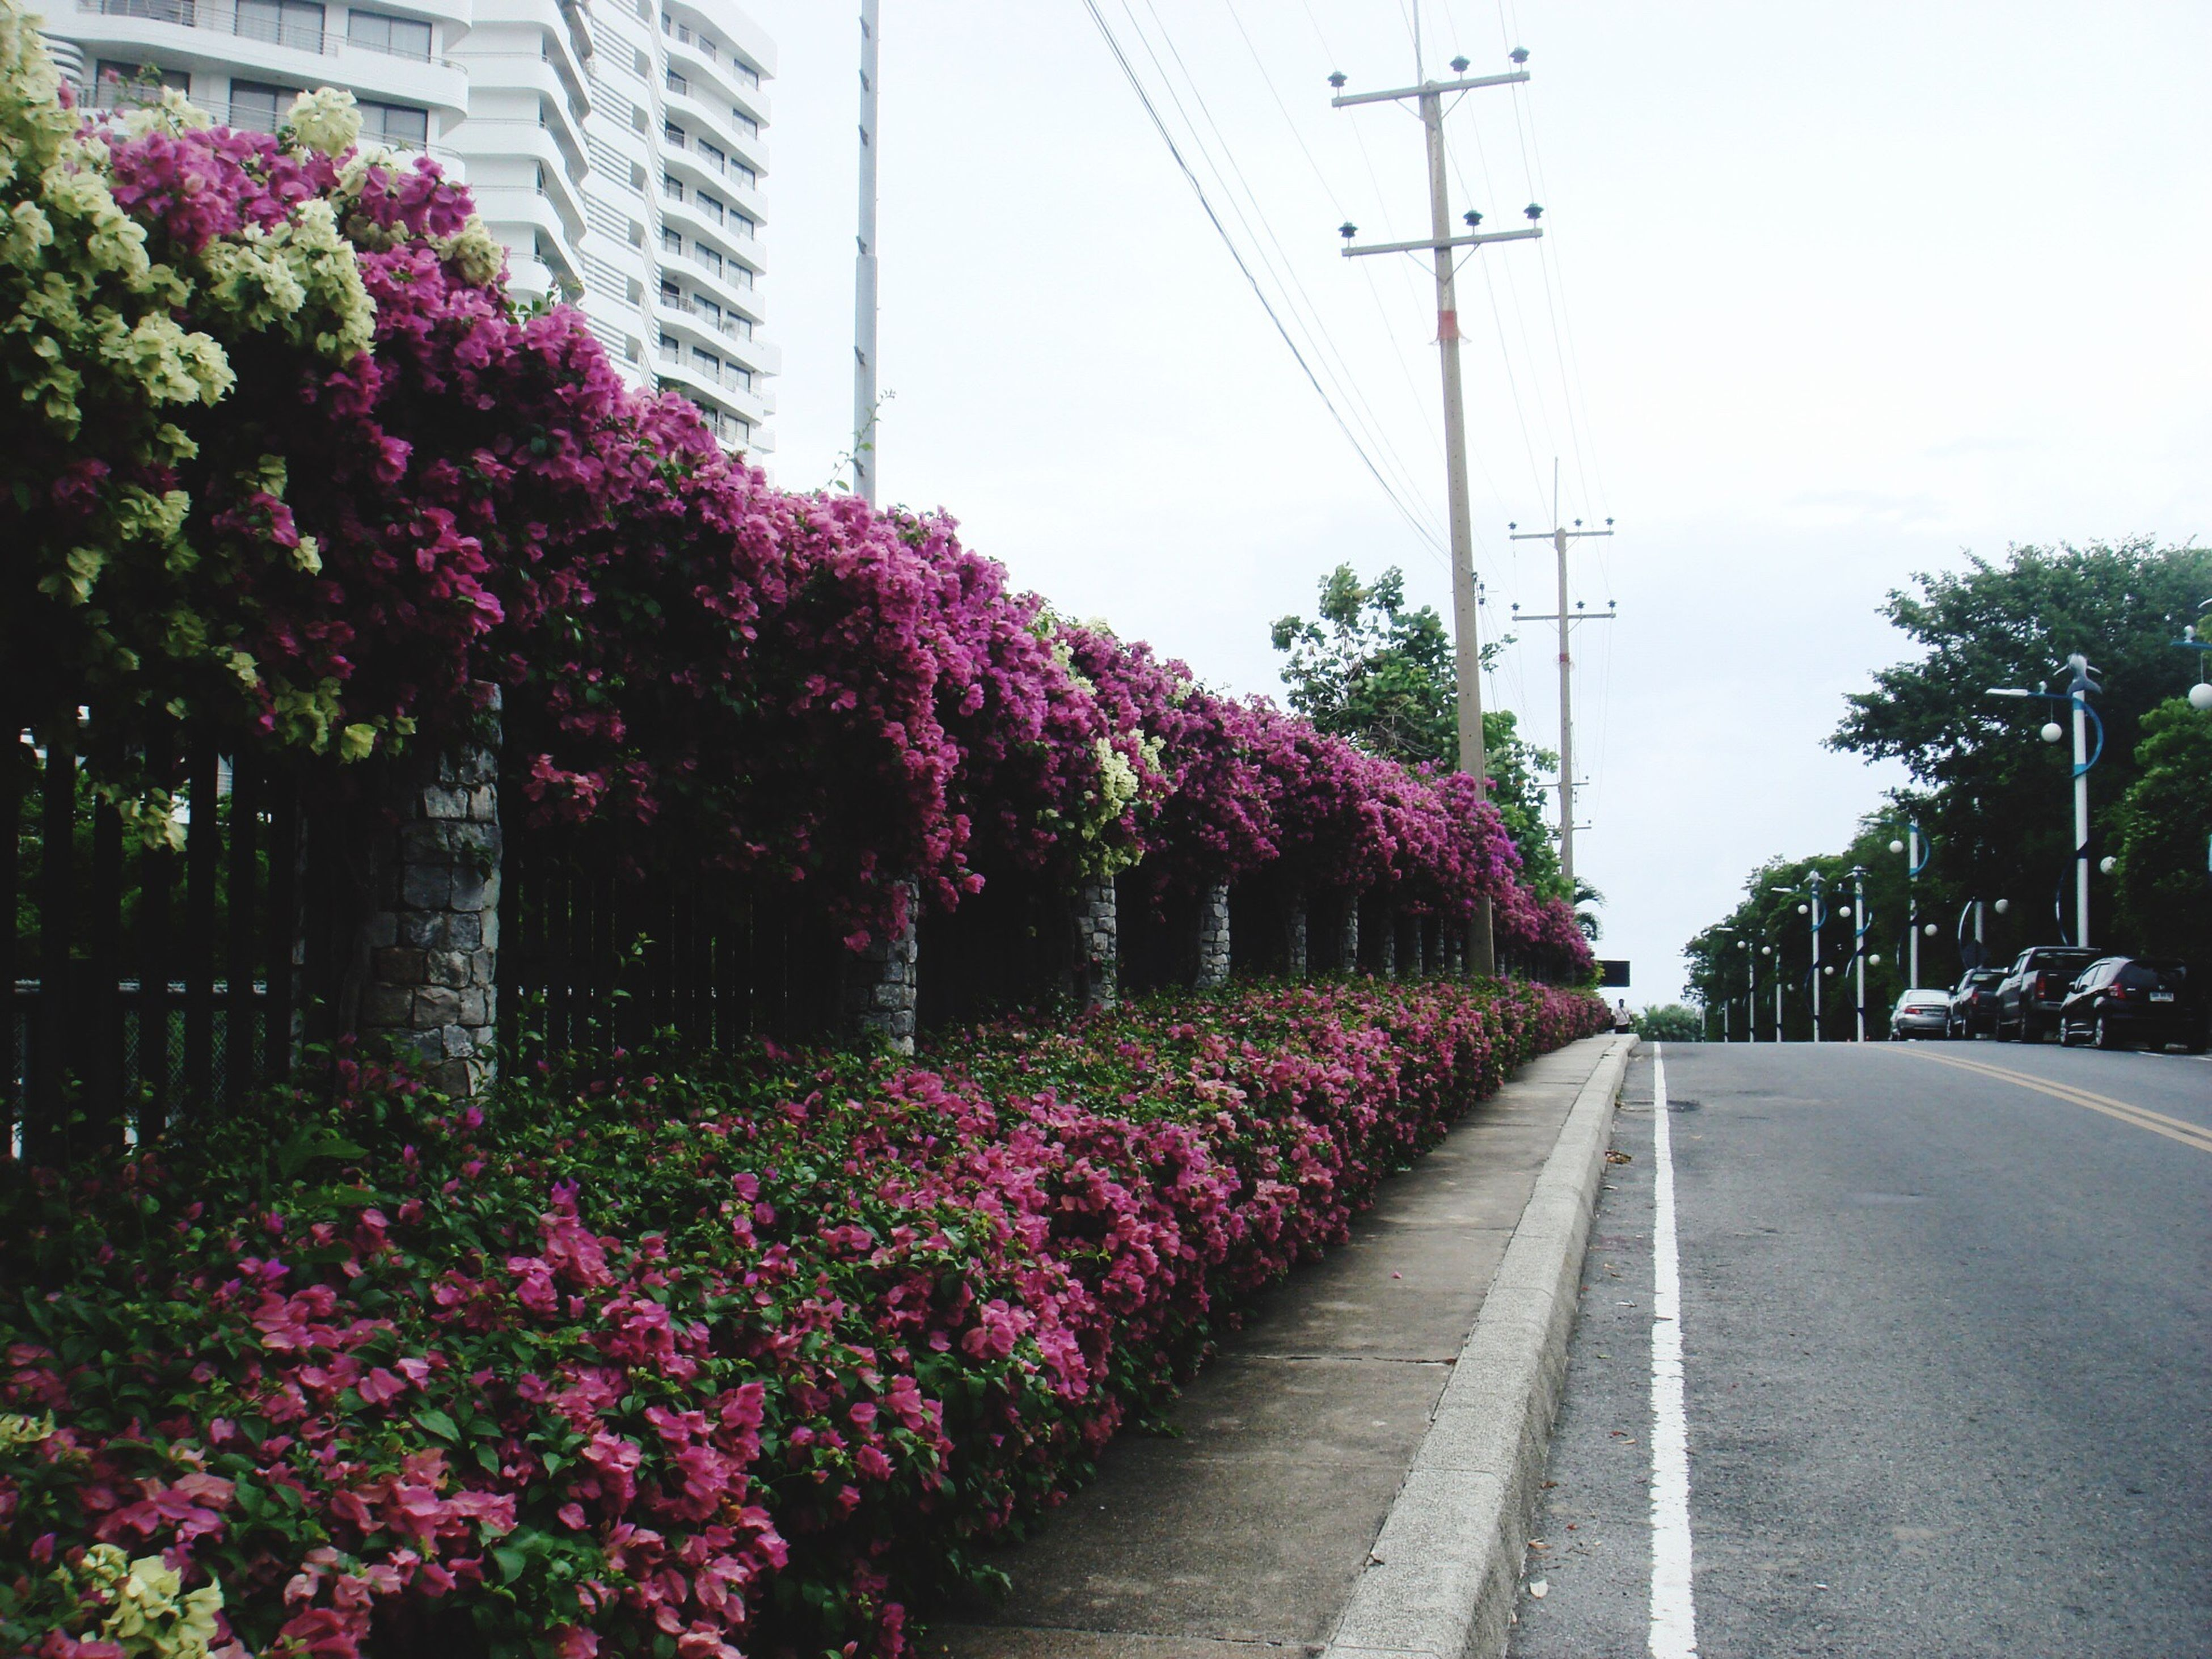 flower, freshness, building exterior, growth, fragility, road, built structure, power line, the way forward, plant, architecture, street, transportation, tree, clear sky, pink color, nature, city, day, outdoors